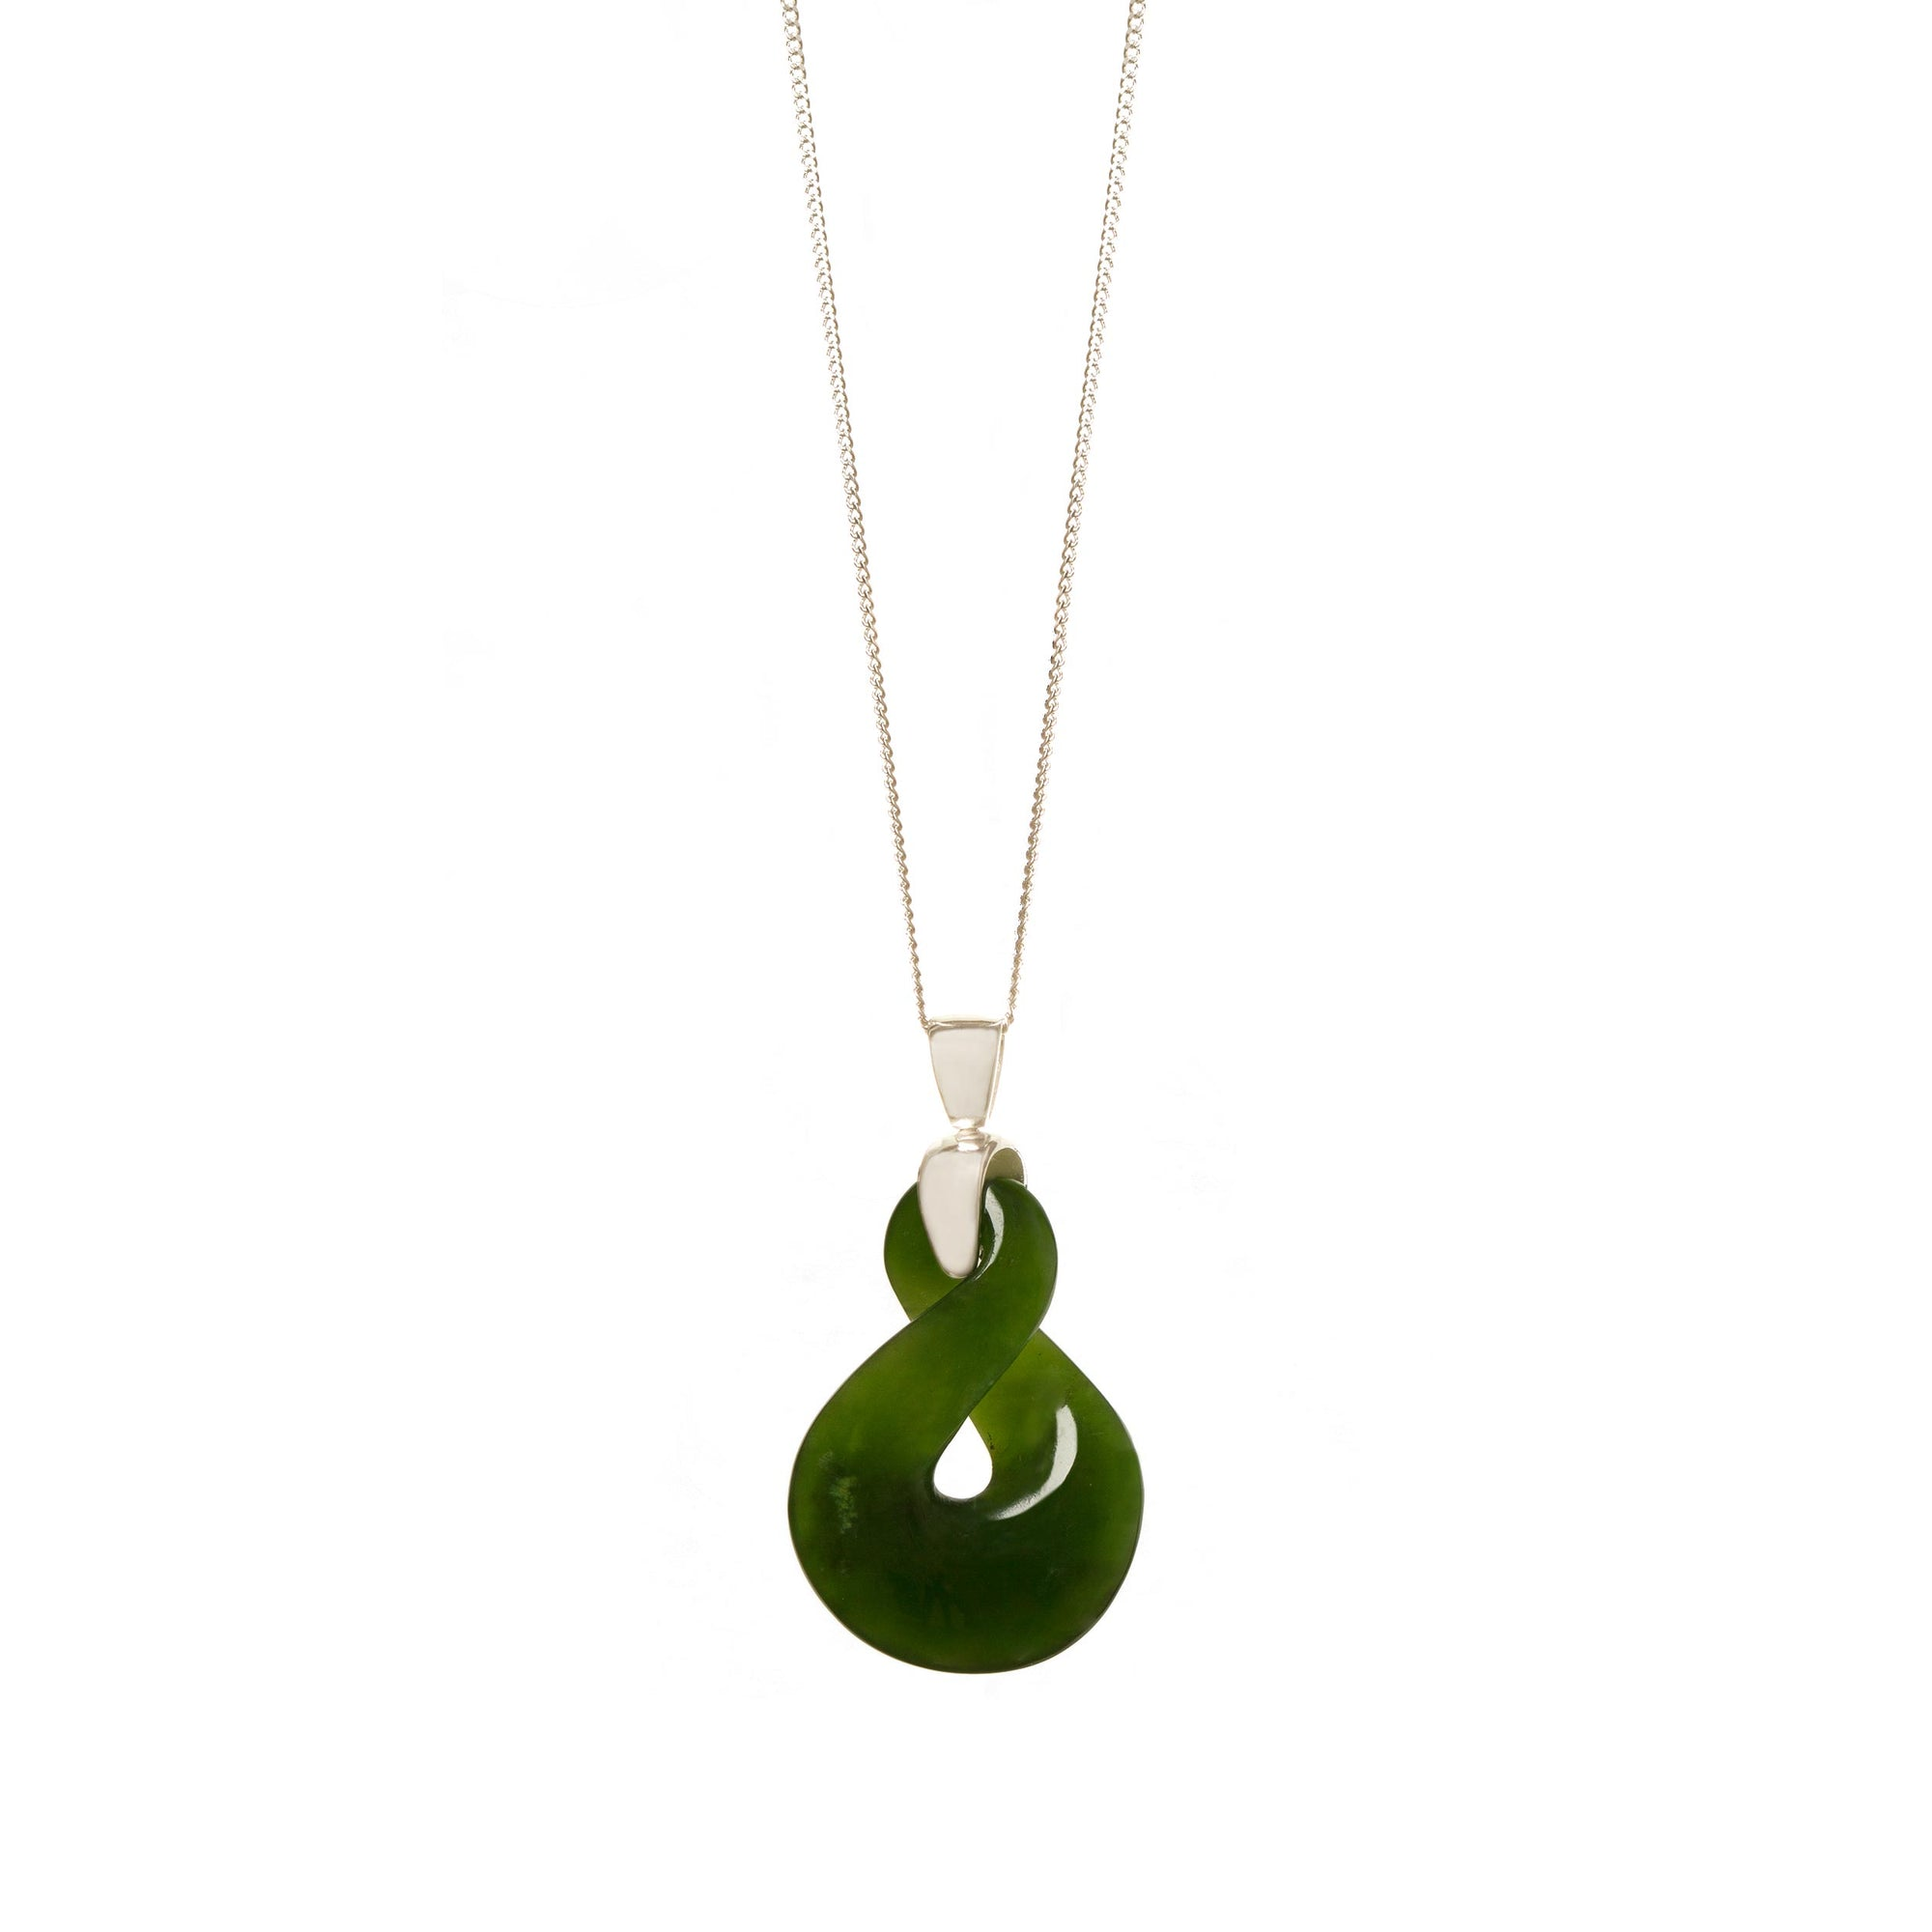 New Zealand Pounamu Single Sliver Twist Necklace